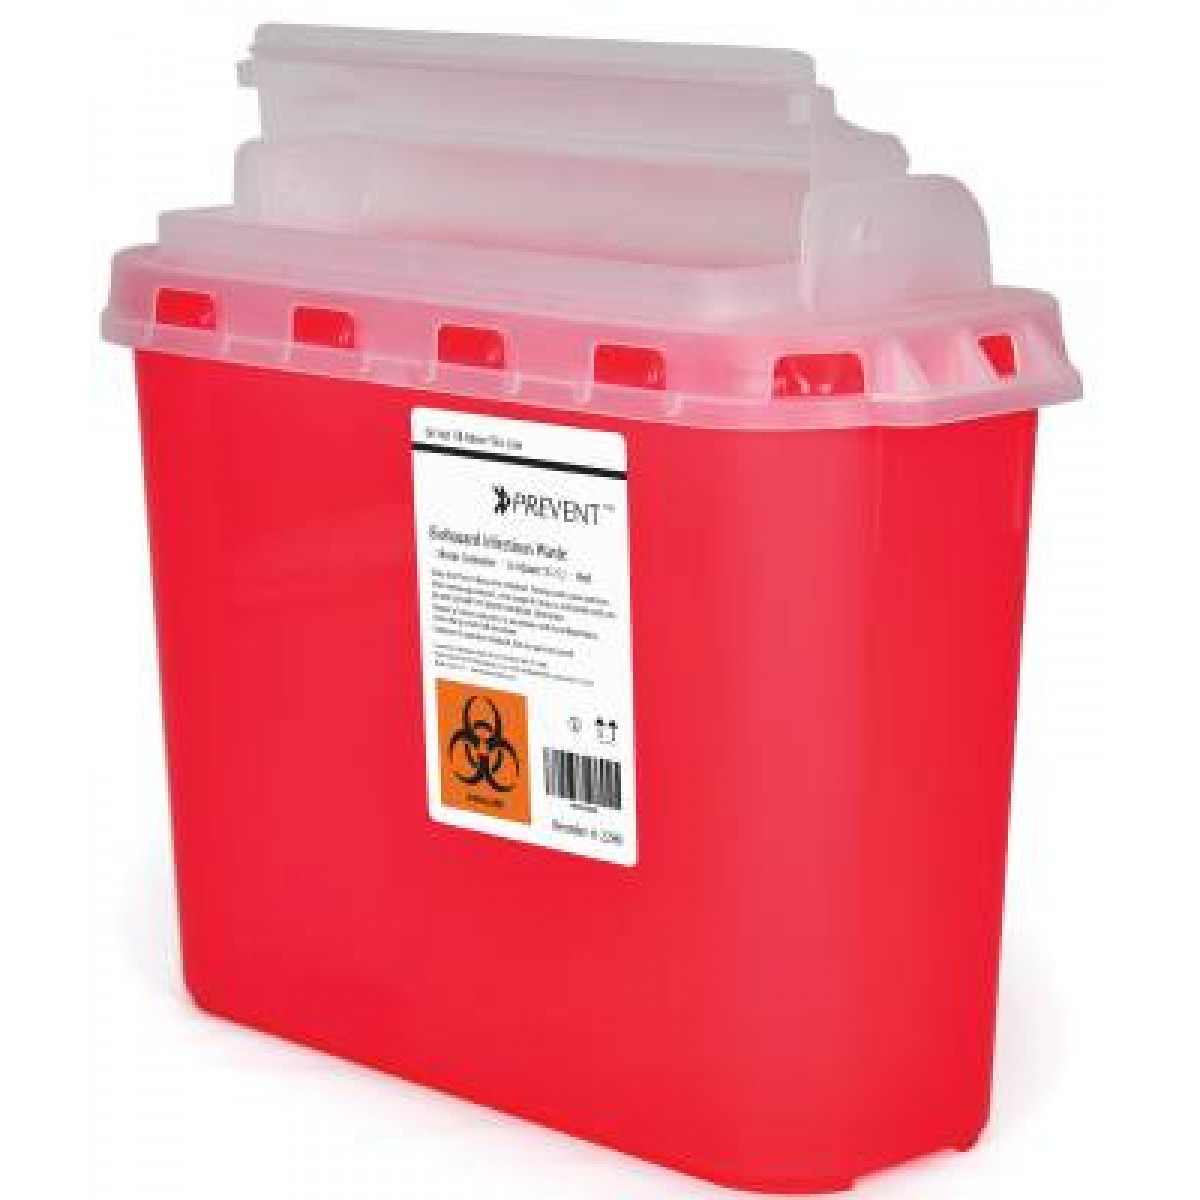 PreVent Sharps Container 11H X 12W X 475D Inch 2269